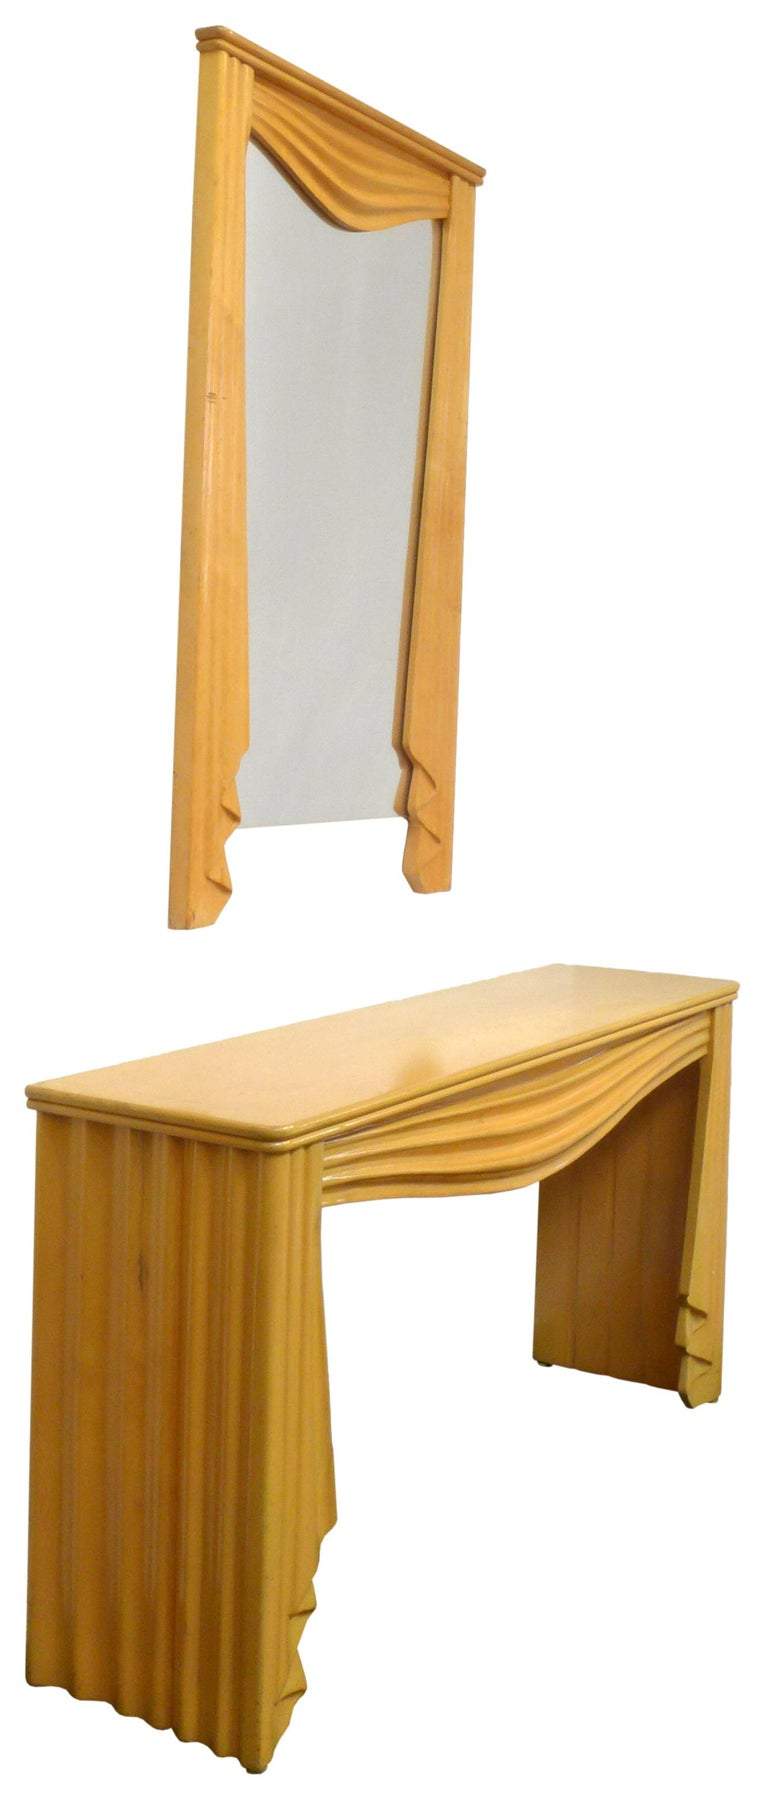 An Italian, carved maple console table and coordinating wall mirror. Very surrealist in feel with the execution of carved wood elements implying draped and undulating fabric. A Trompe-l'œil material effect created by this playful and creative